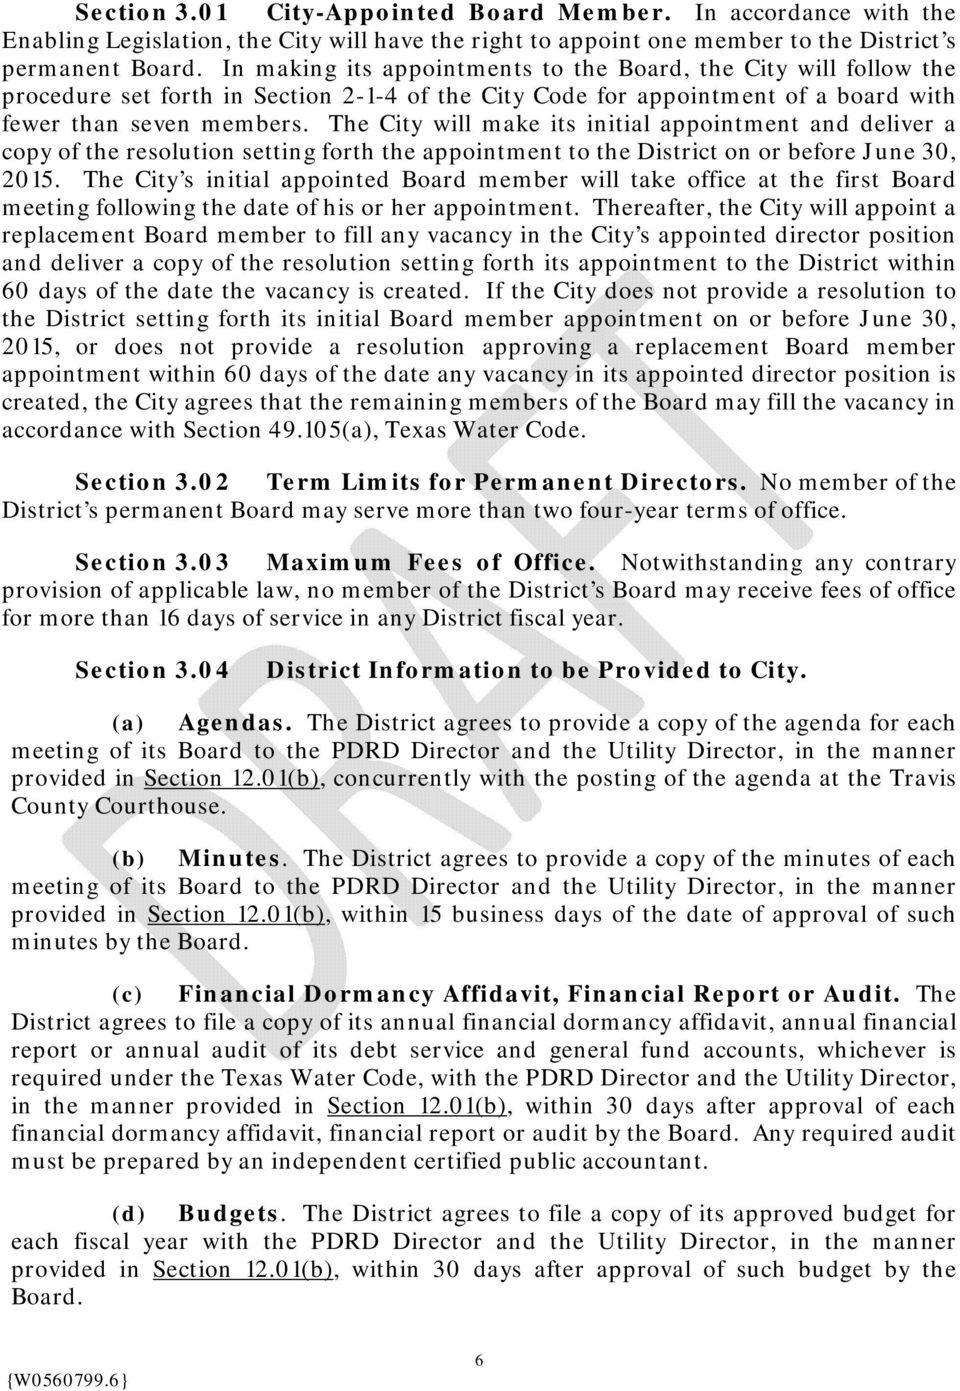 The City will make its initial appointment and deliver a copy of the resolution setting forth the appointment to the District on or before June 30, 2015.